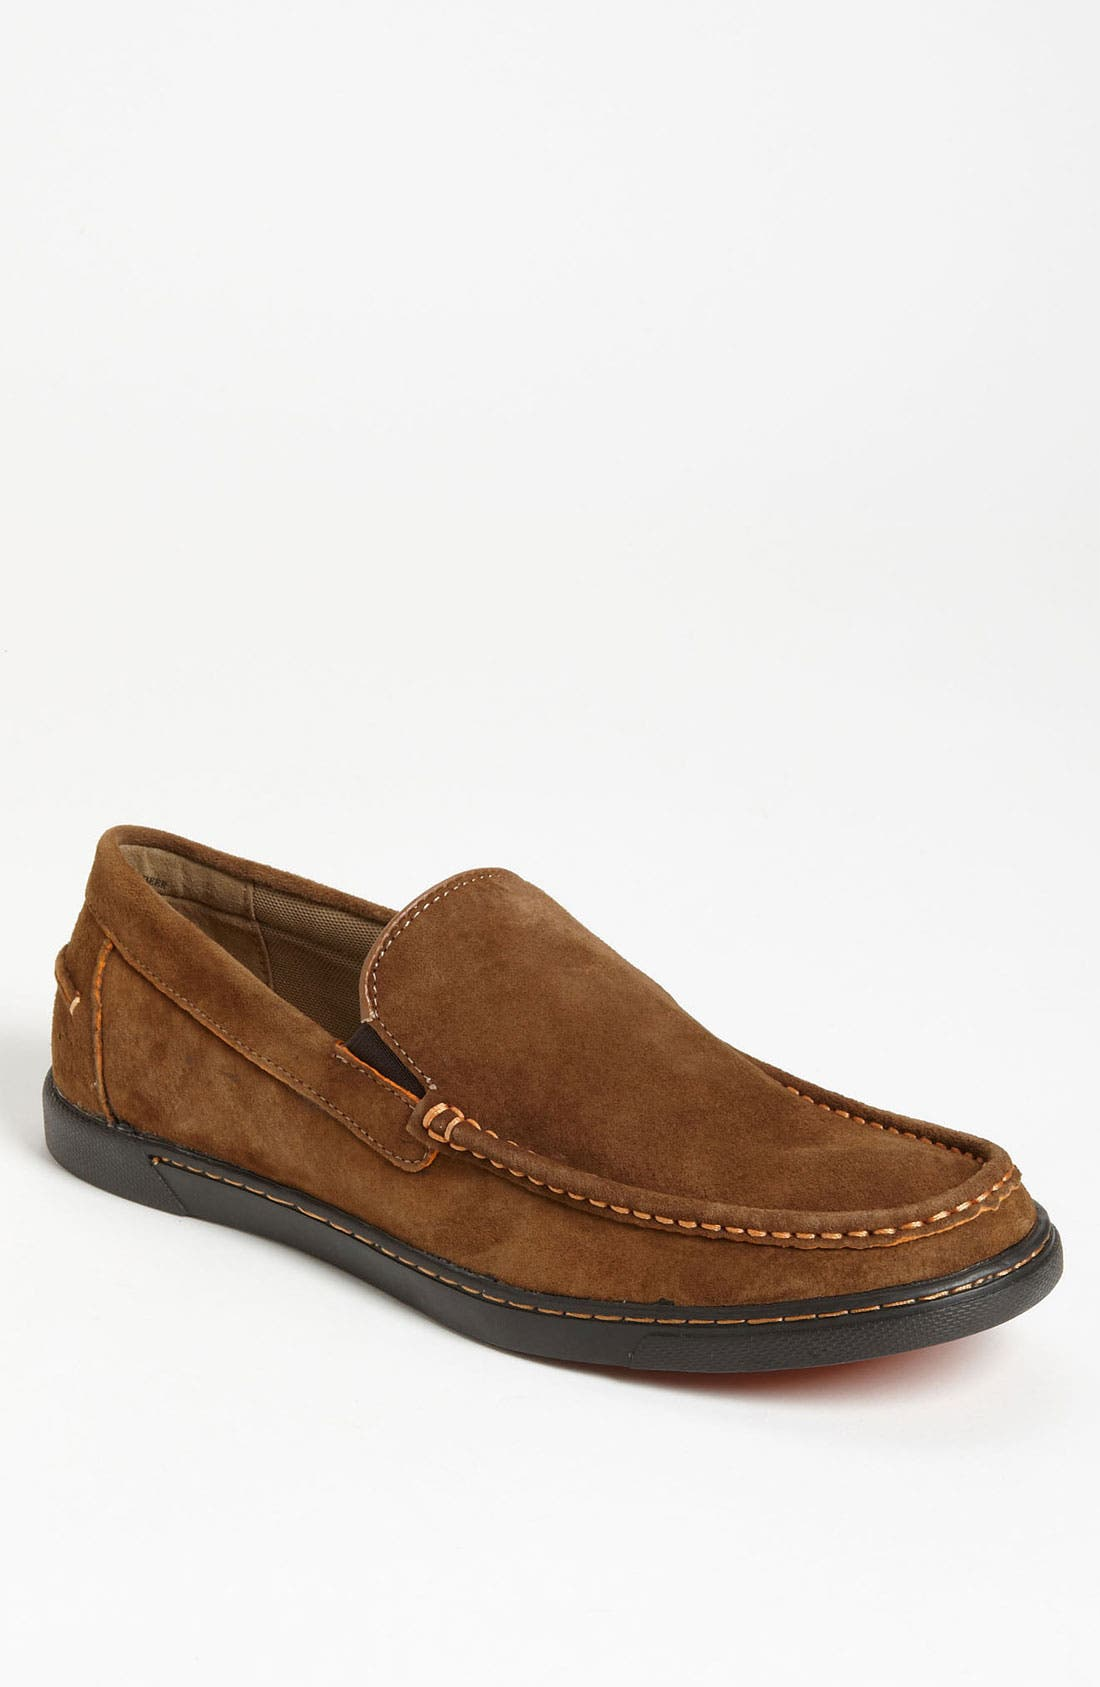 Main Image - Hush Puppies 'Winns' Loafer